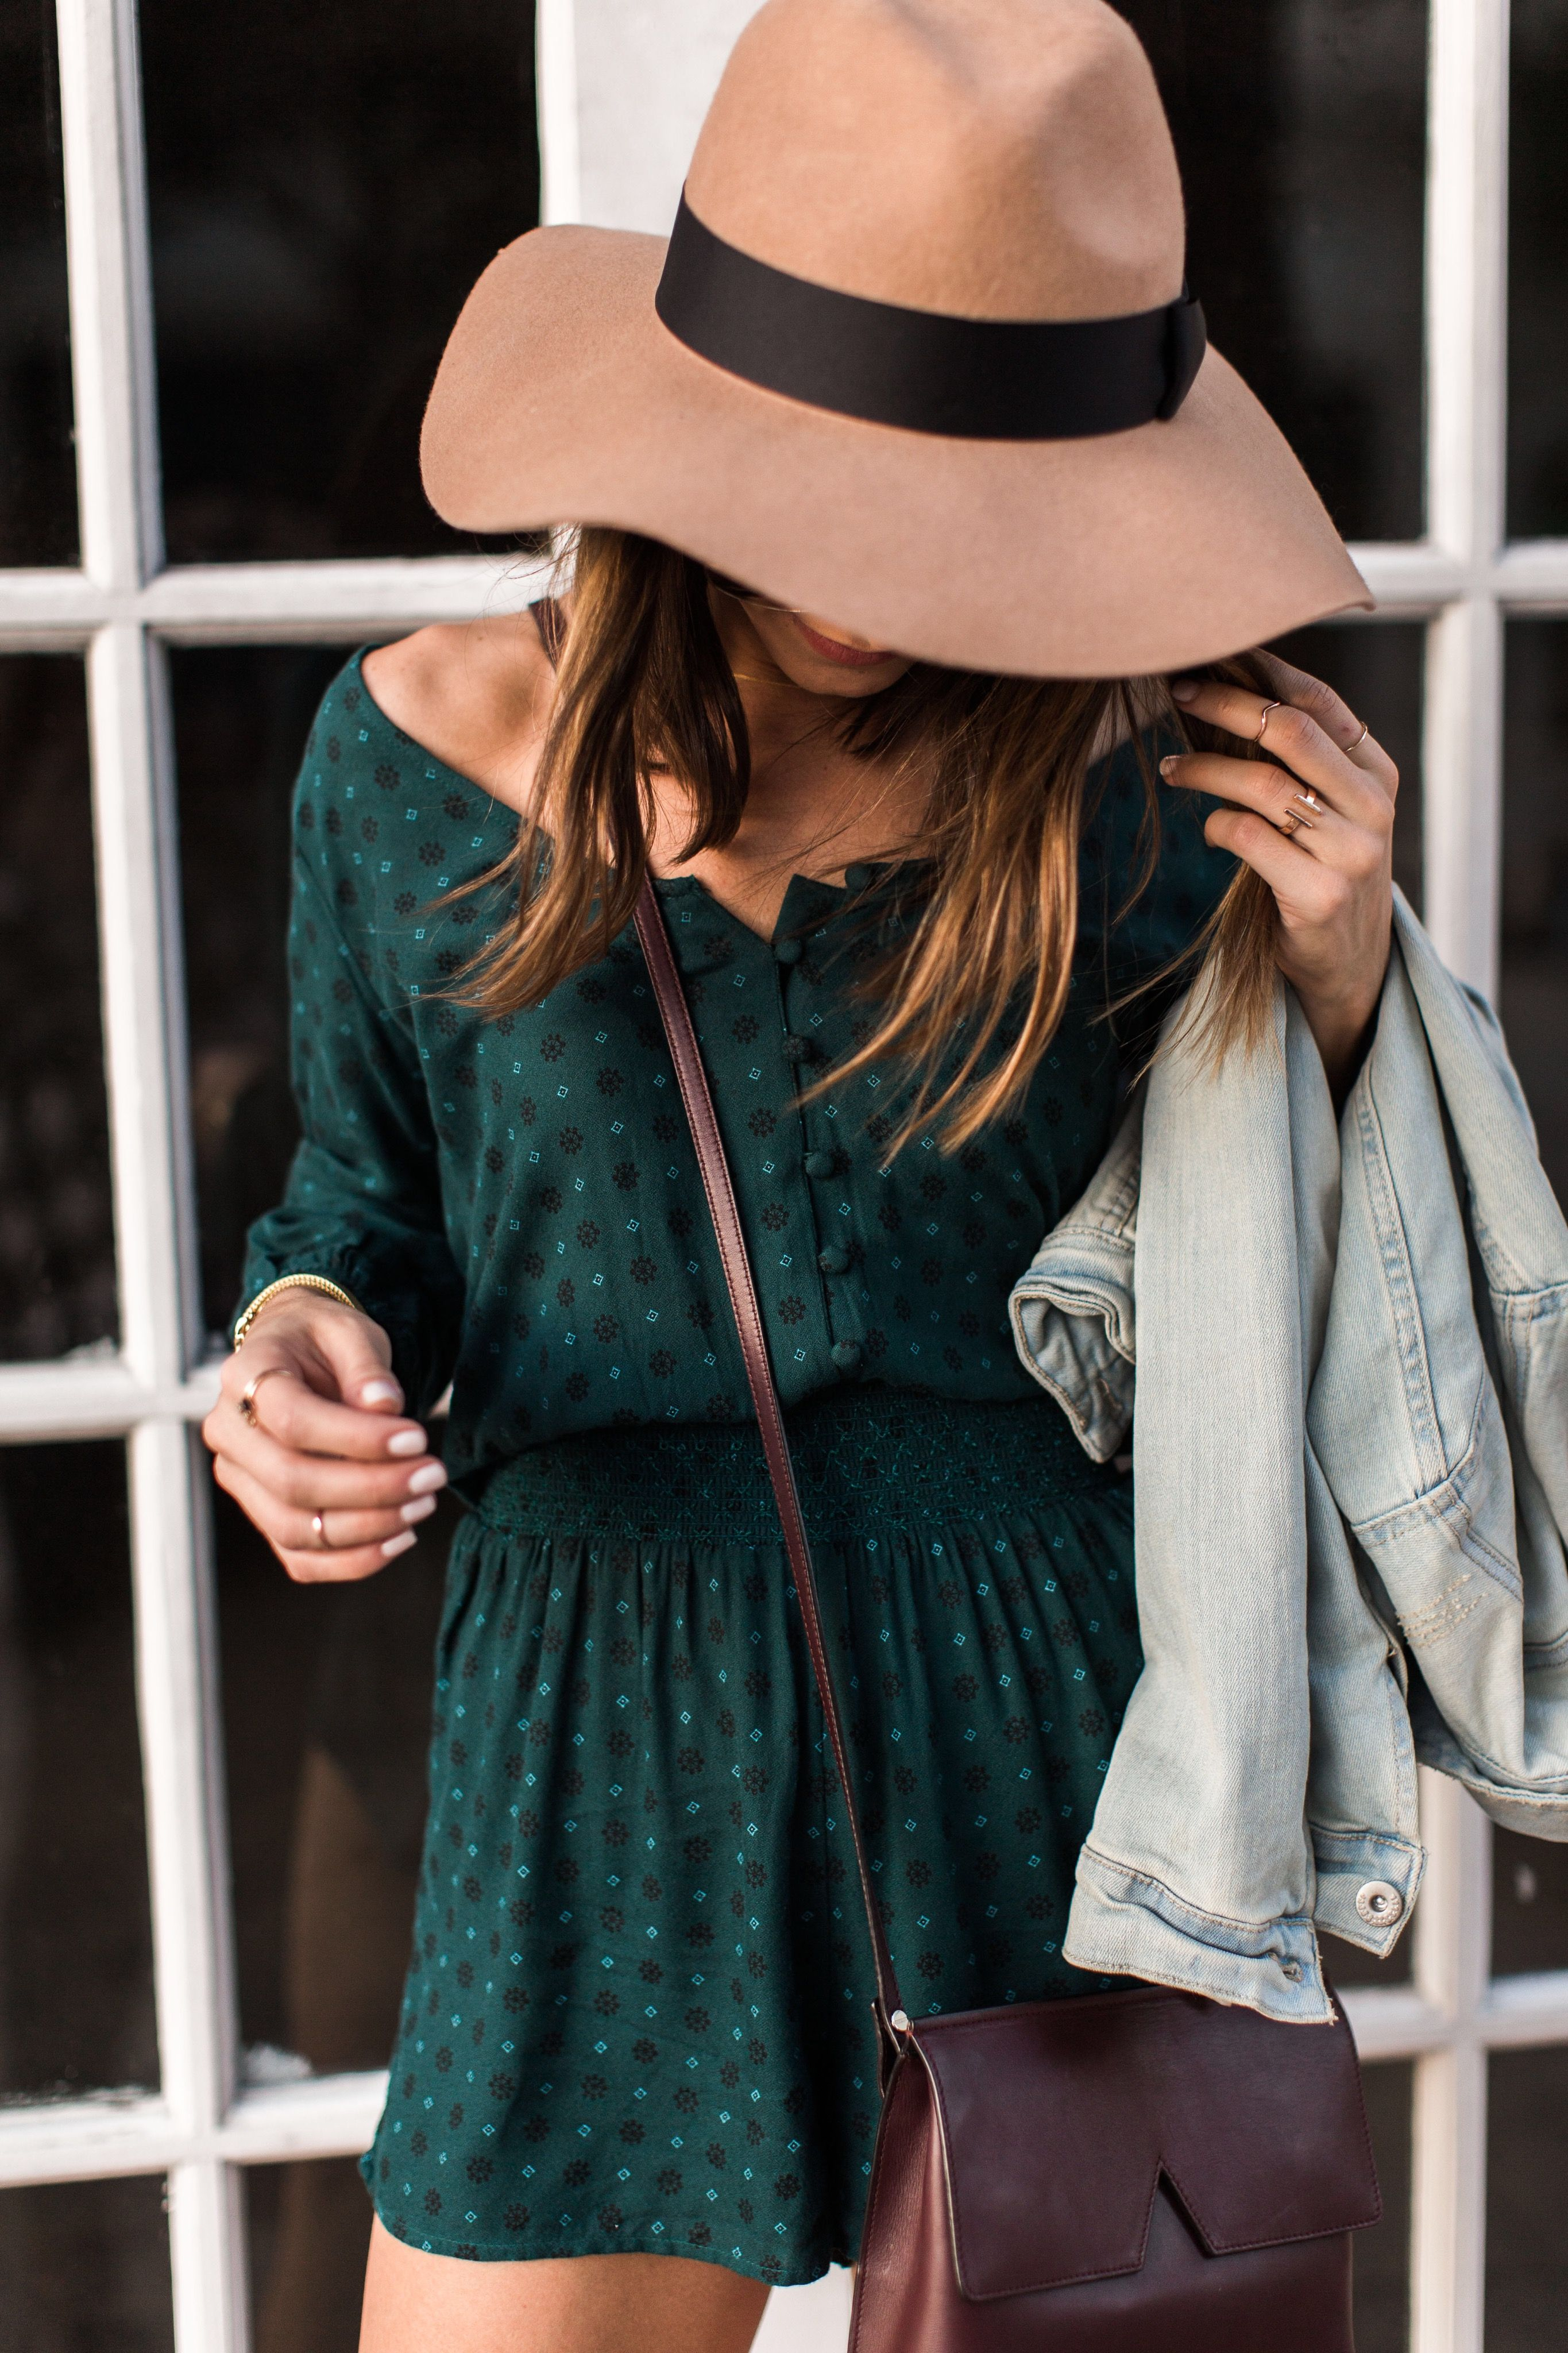 Stephanie from @thestylebungalow styled our Smocked romper! Check out the blog at blog.ae.com to see her #AEOSTYLE inspiration